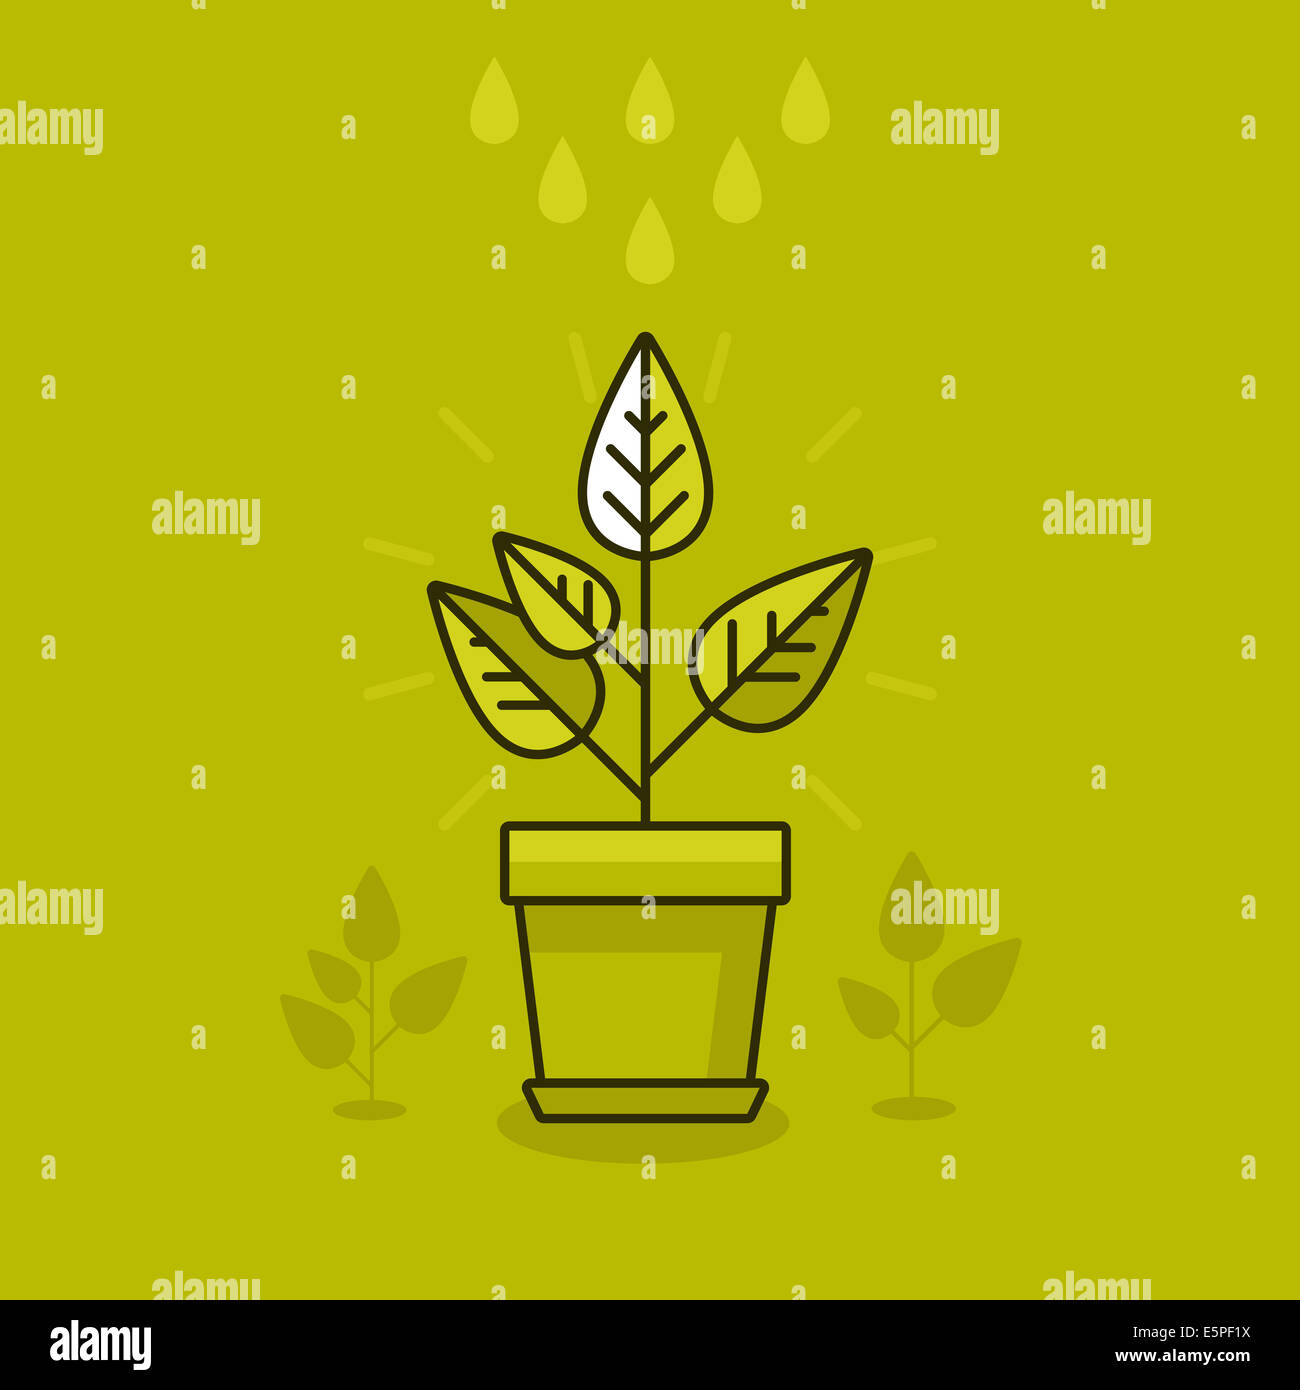 Abstract growth concept - new plant in the pot - icon in flat style - Stock Image